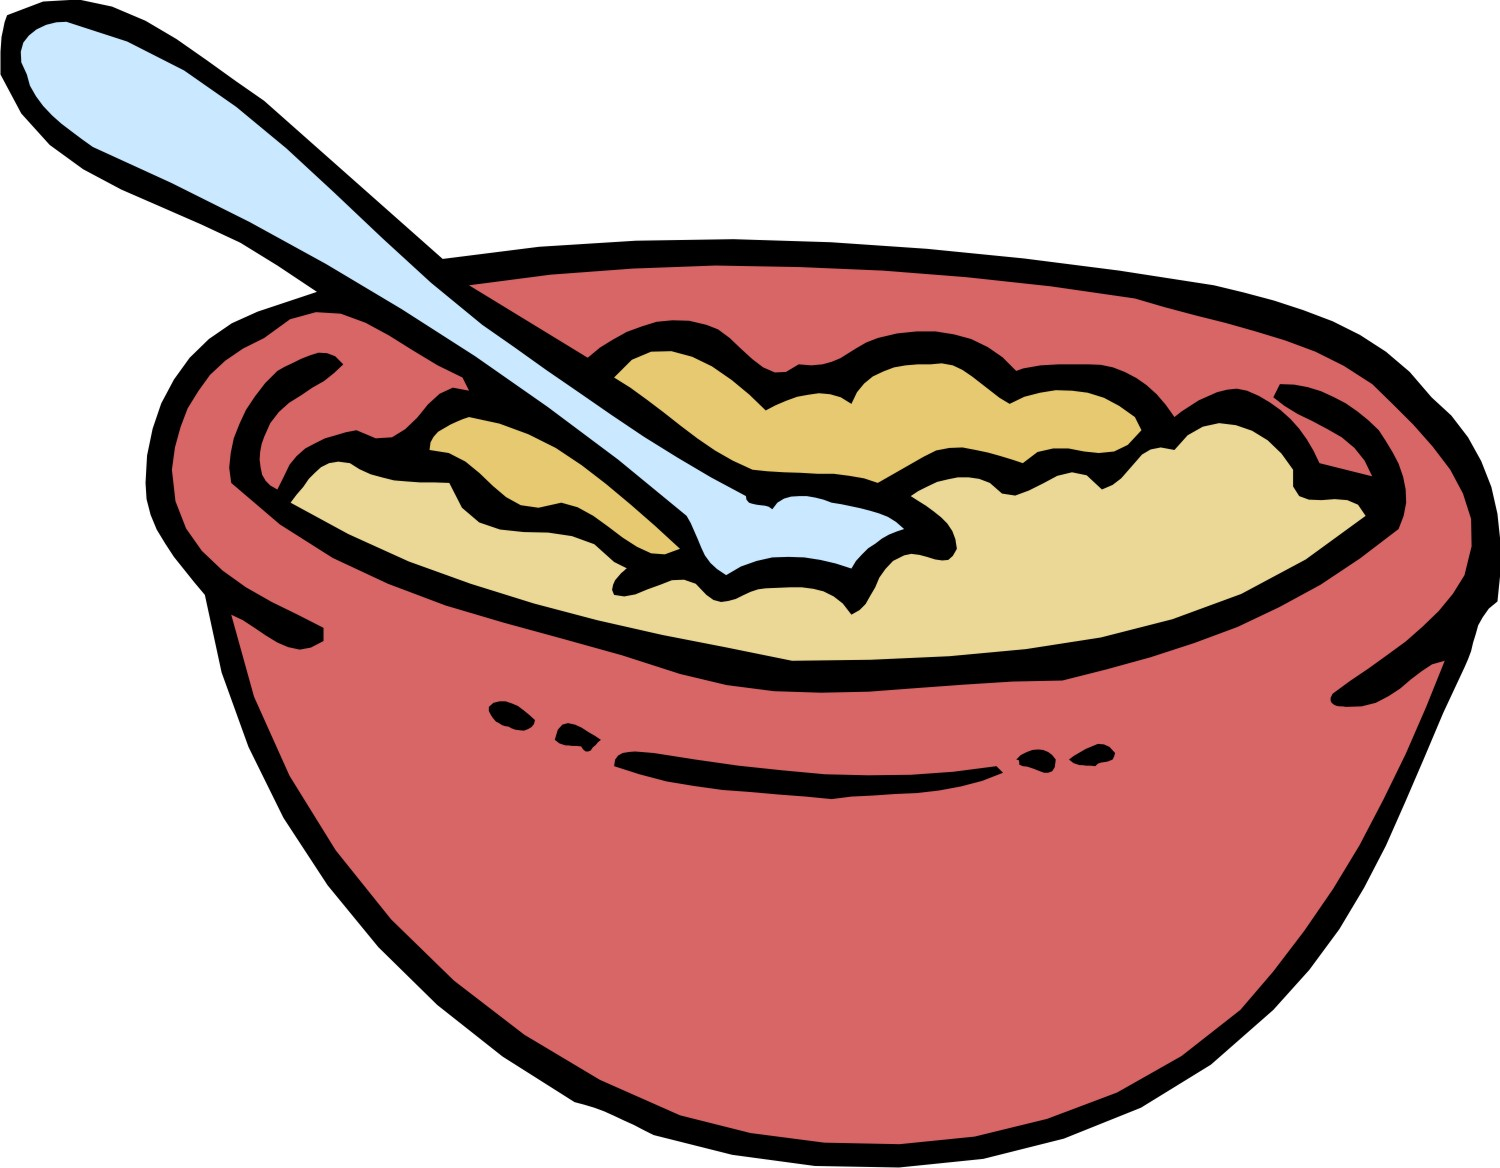 Bowl Of Cereal Clipart